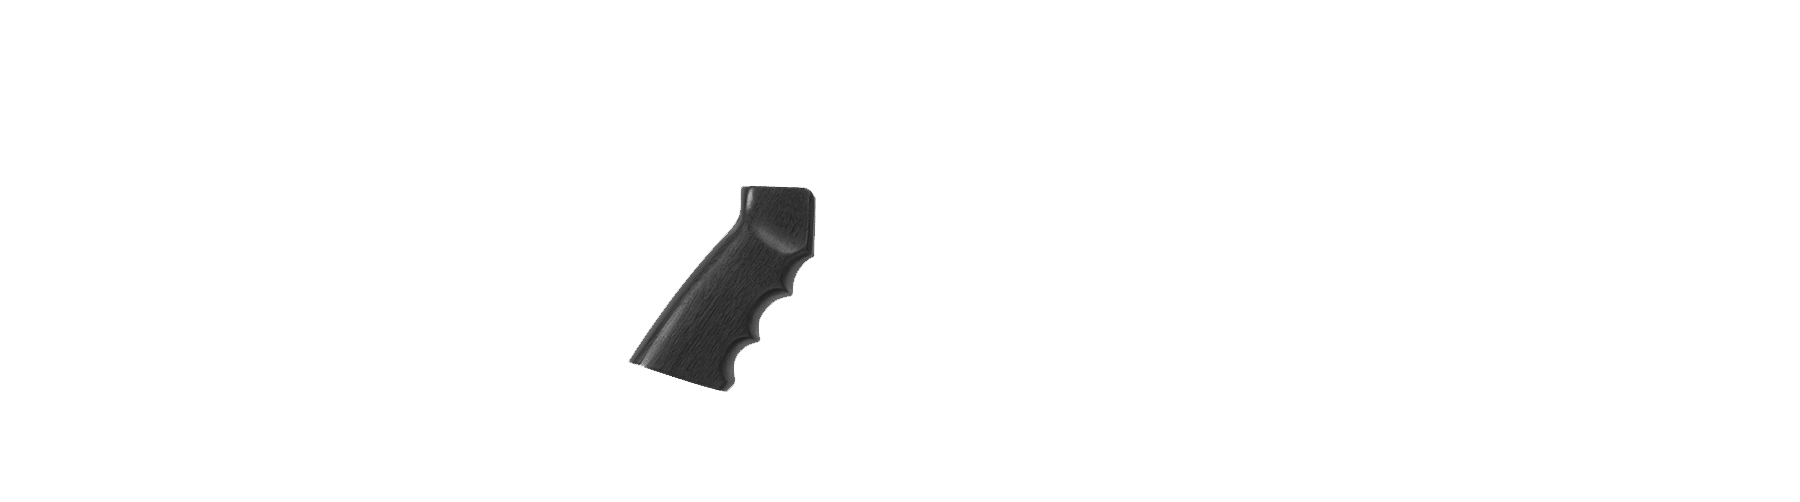 Remington® Ar-15 Finger Groove Grip